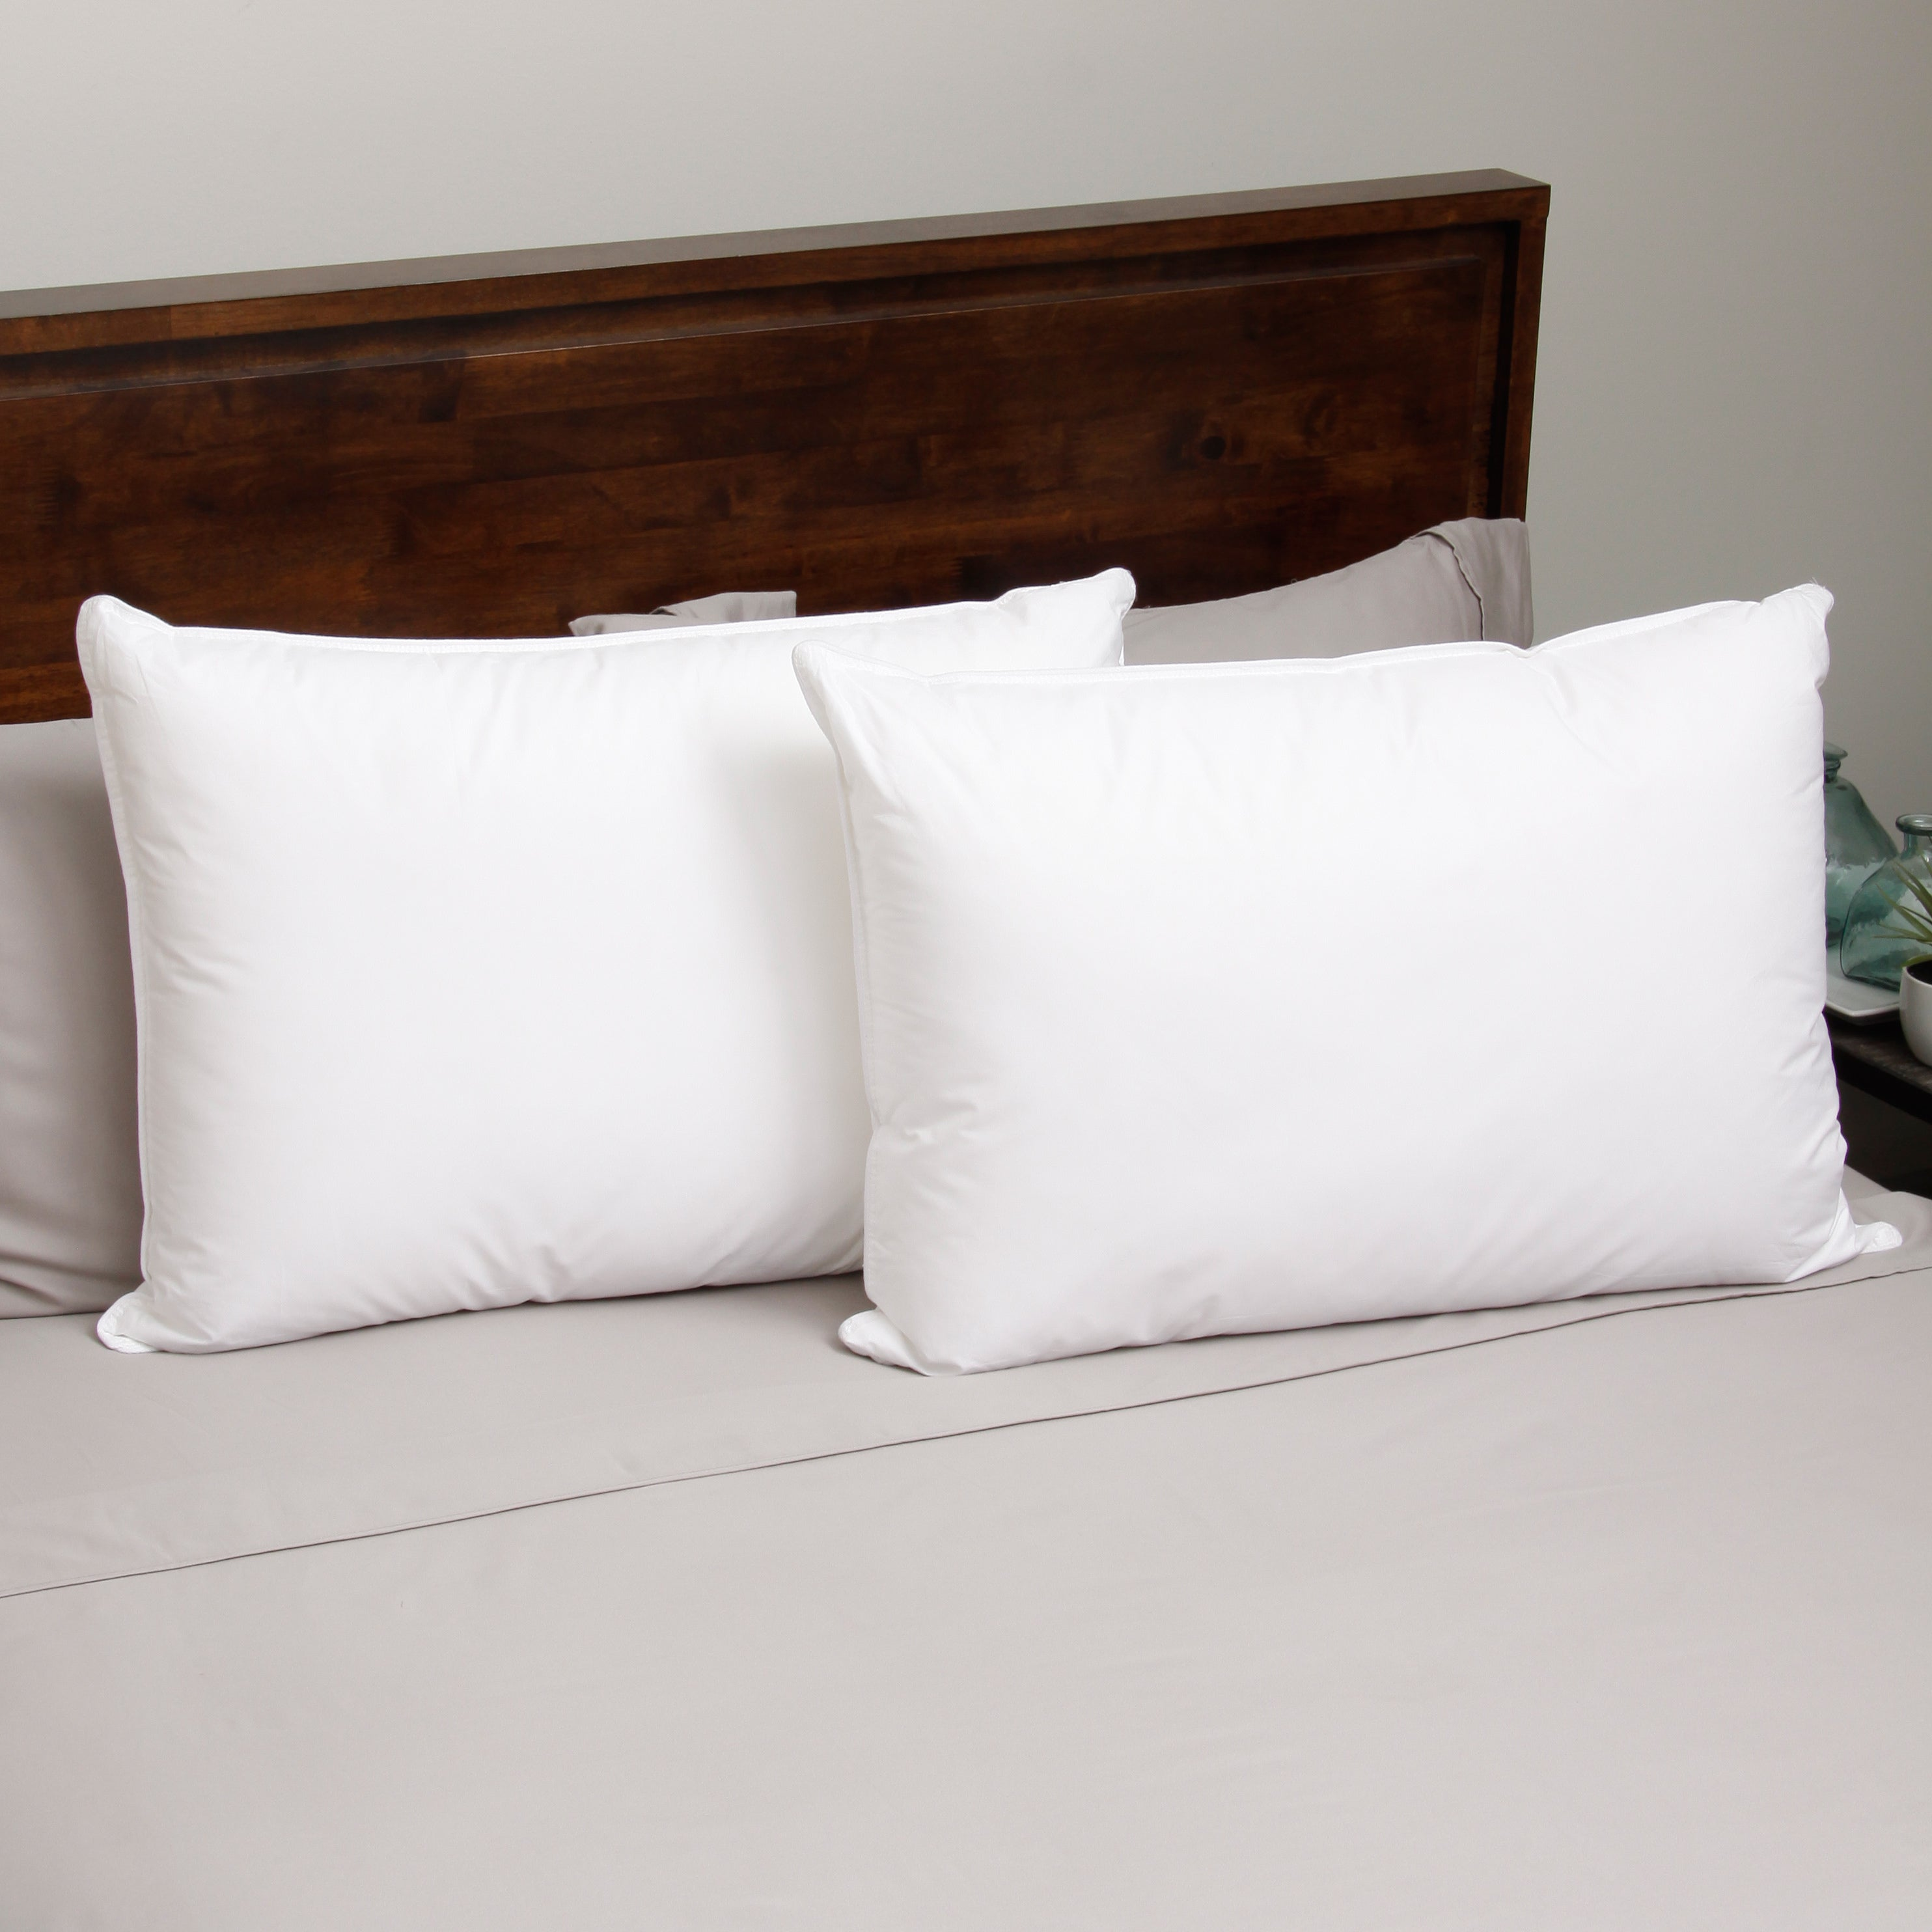 Hotel Madison Twill 300 Thread Count Gel Memory Fiber Pillow (Set of 2) at Sears.com